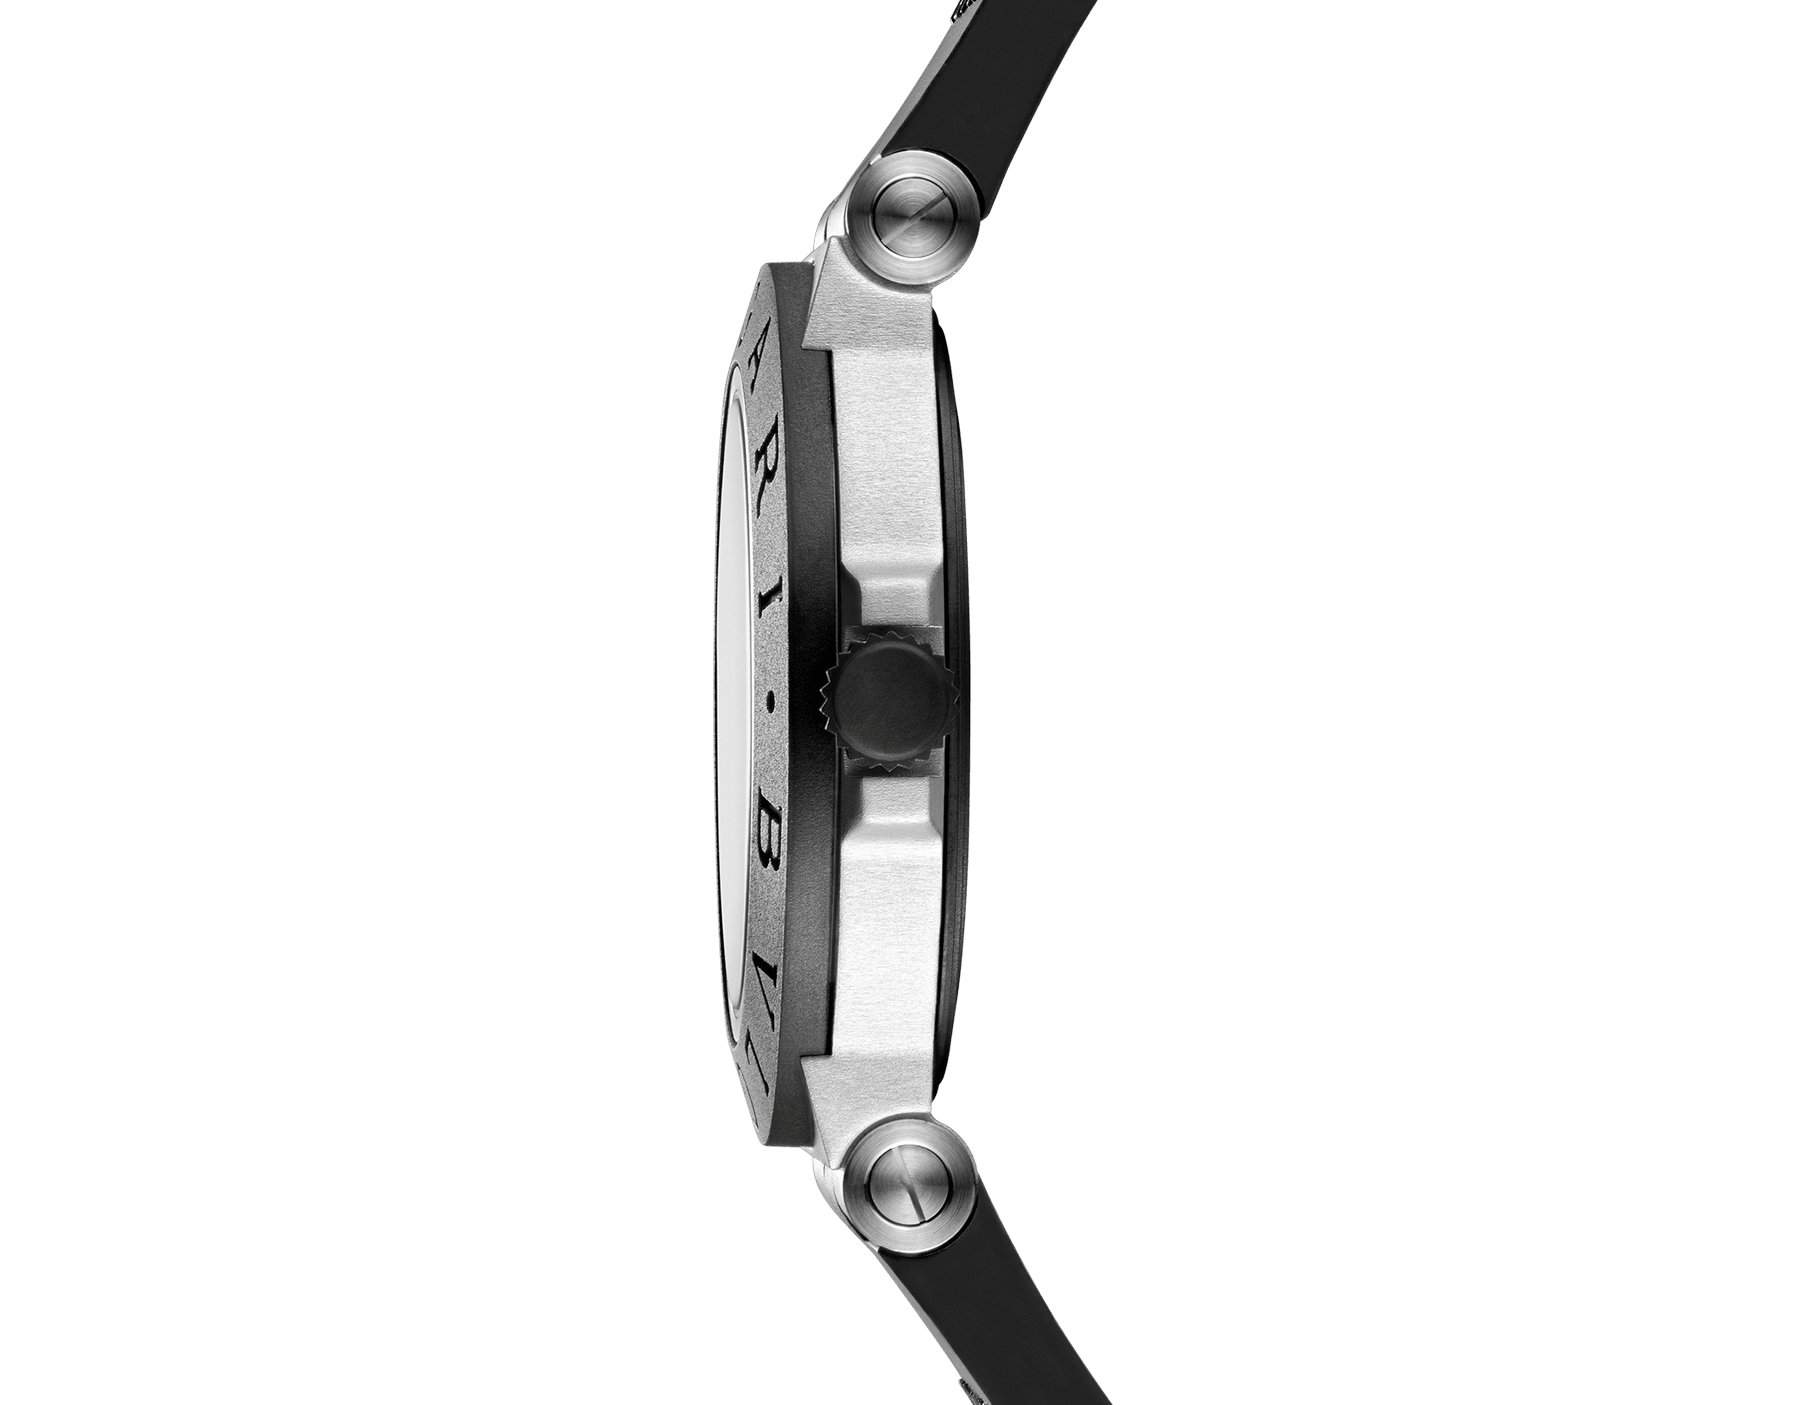 Bvlgari Aluminium watch with mechanical manufacture movement, automatic winding, 40 mm aluminium and titanium case, black rubber bezel with BVLGARI BVLGARI engraving, black dial and black rubber bracelet. Water resistant up to 100 metres 103445 image 3